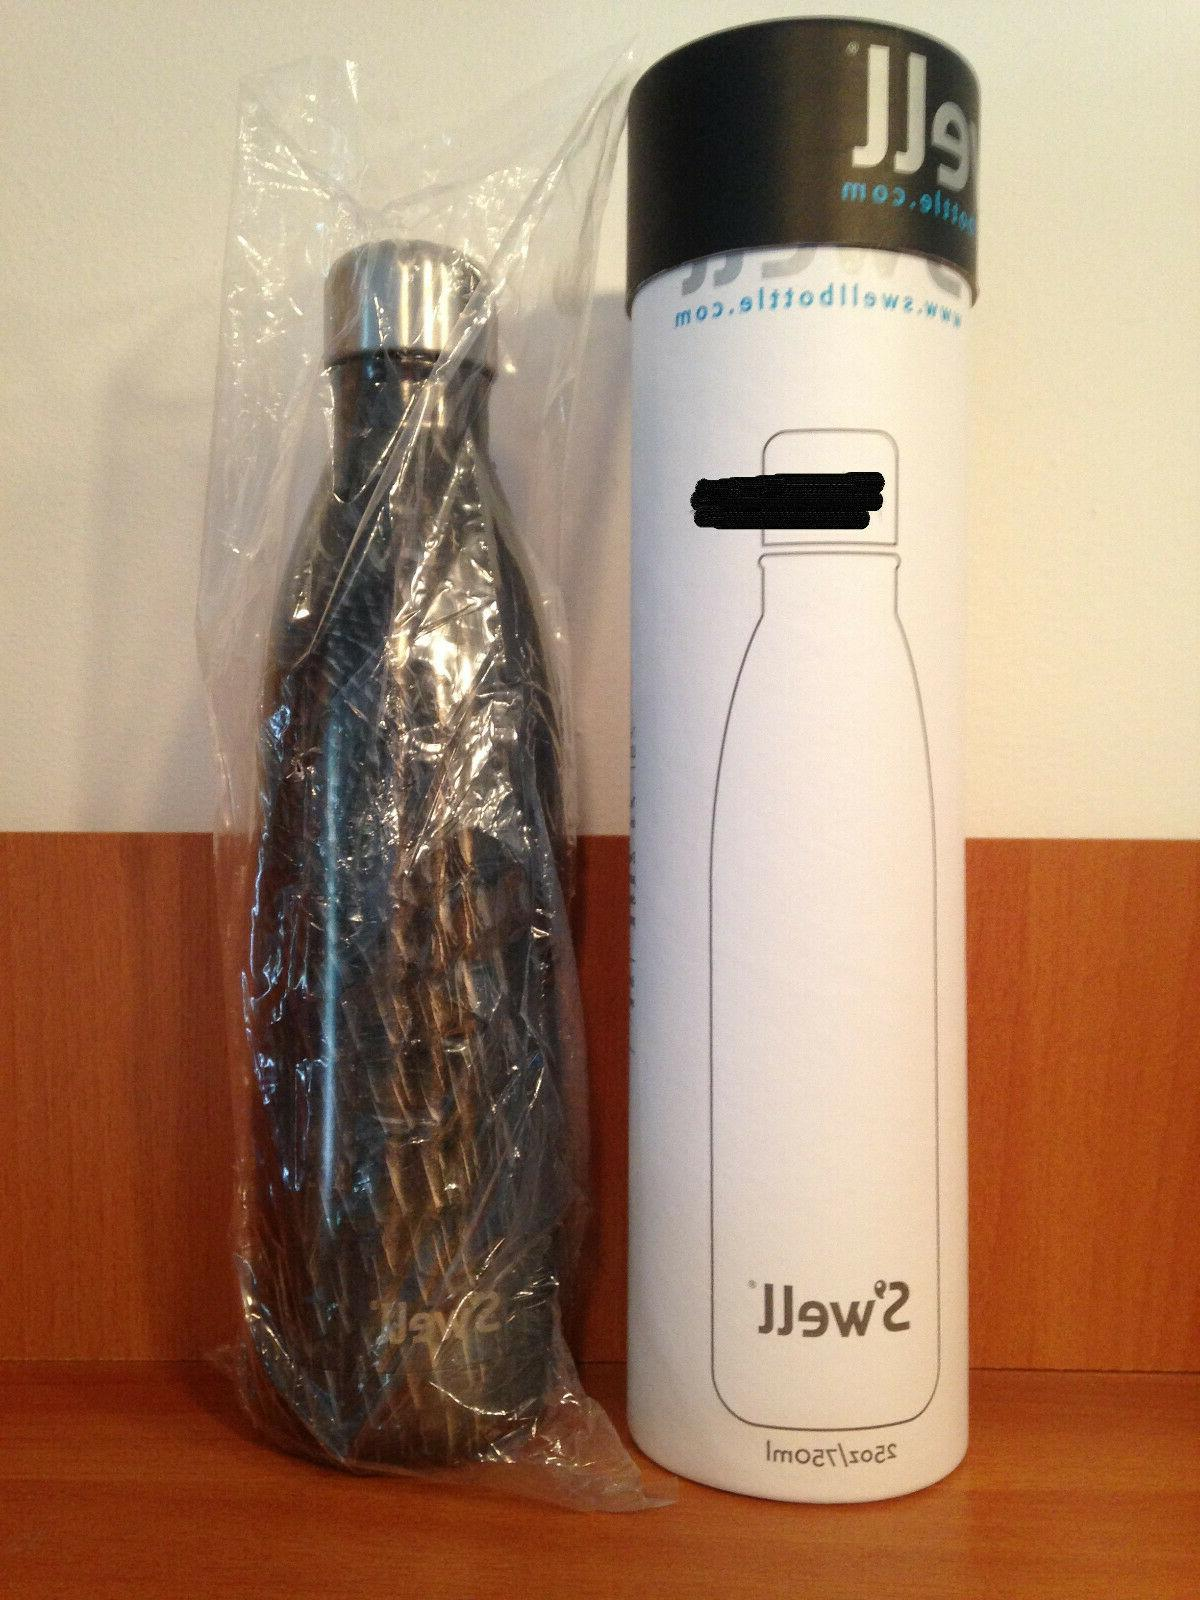 S'well water oz of 4 Collection